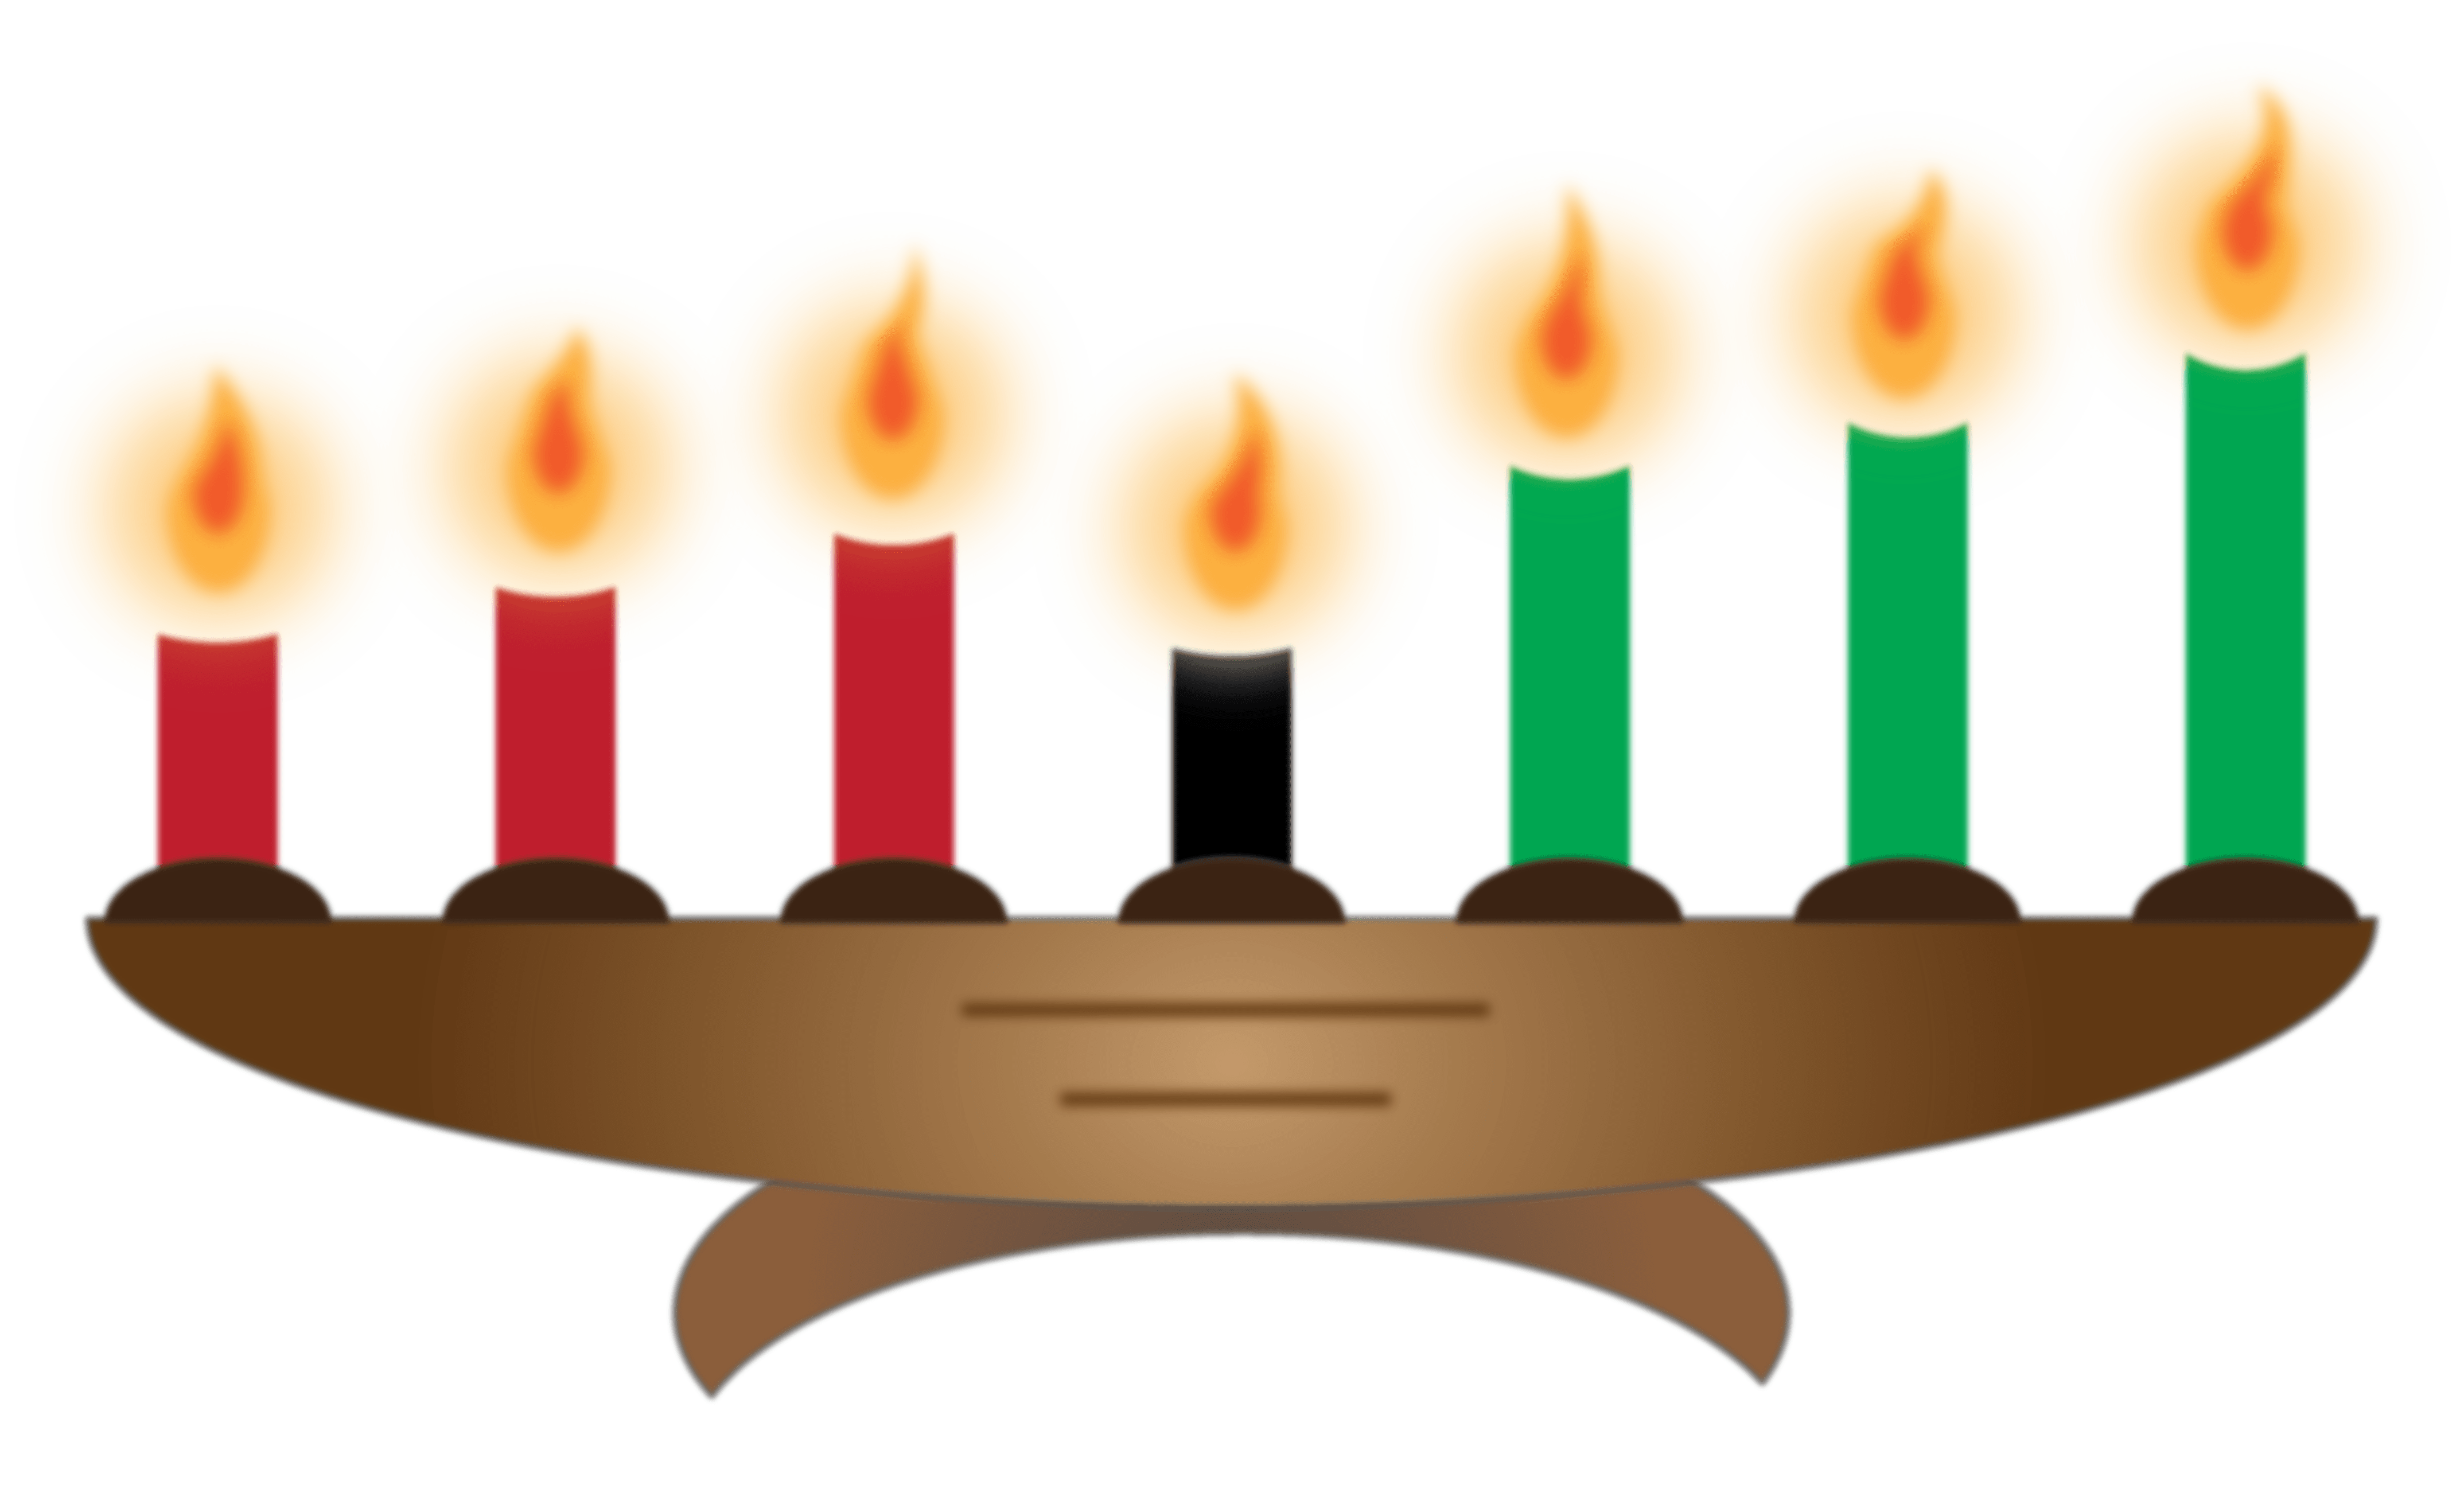 Kwanzaa clipart transparent. Free download clip art